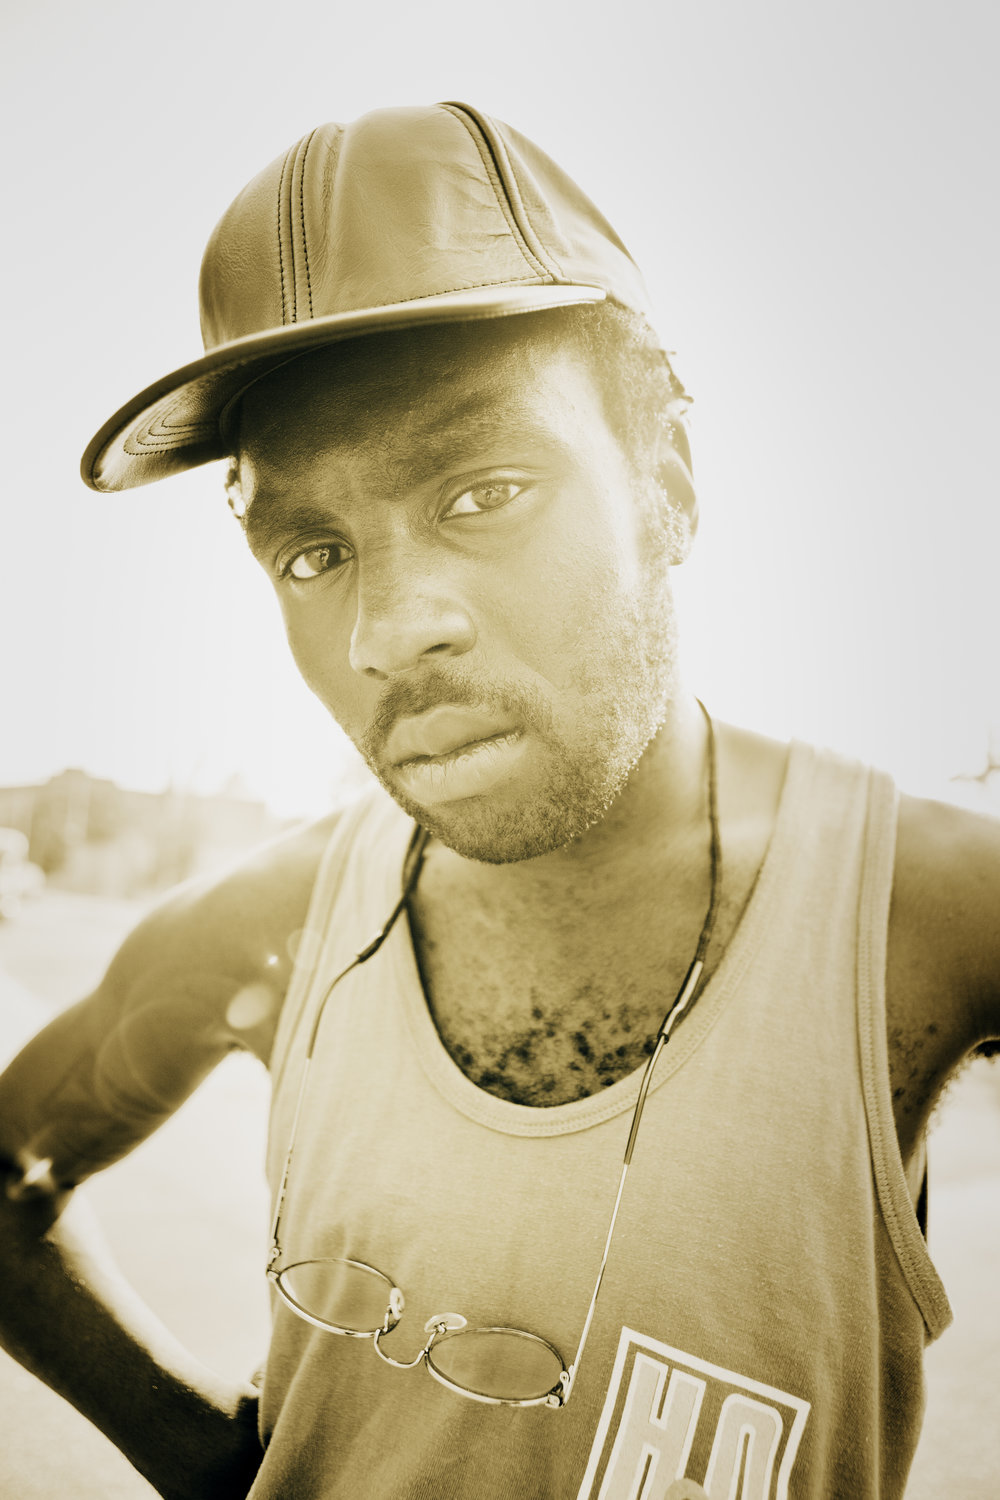 Dev Hynes (Blood Orange), Brooklyn, 2011